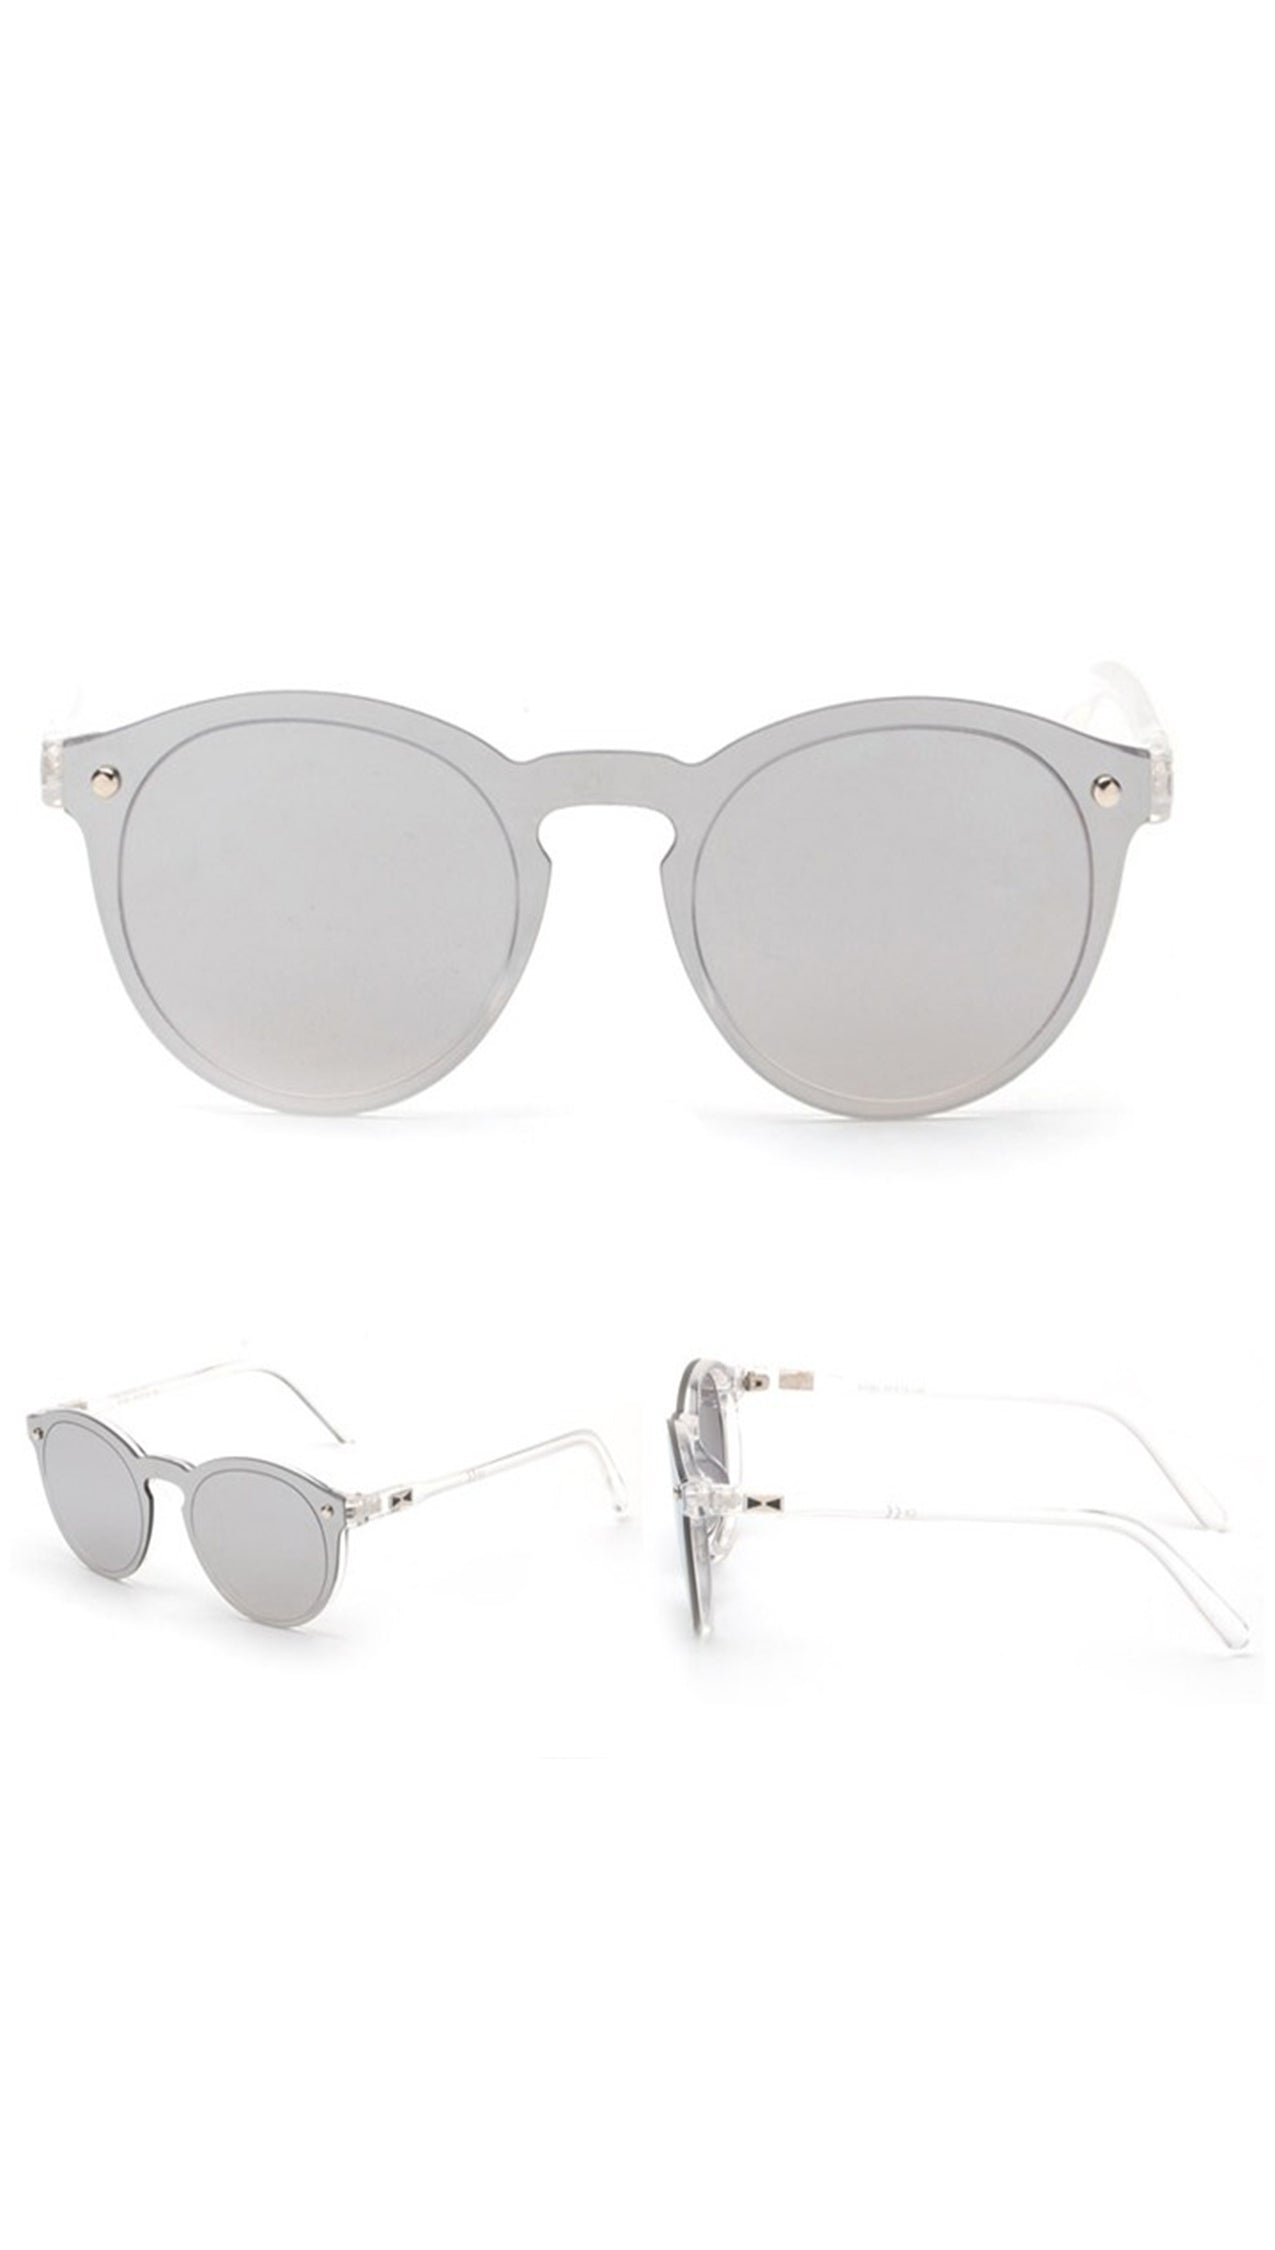 Charlie Shade Sunglasses Silver Mirror Reflective Designer